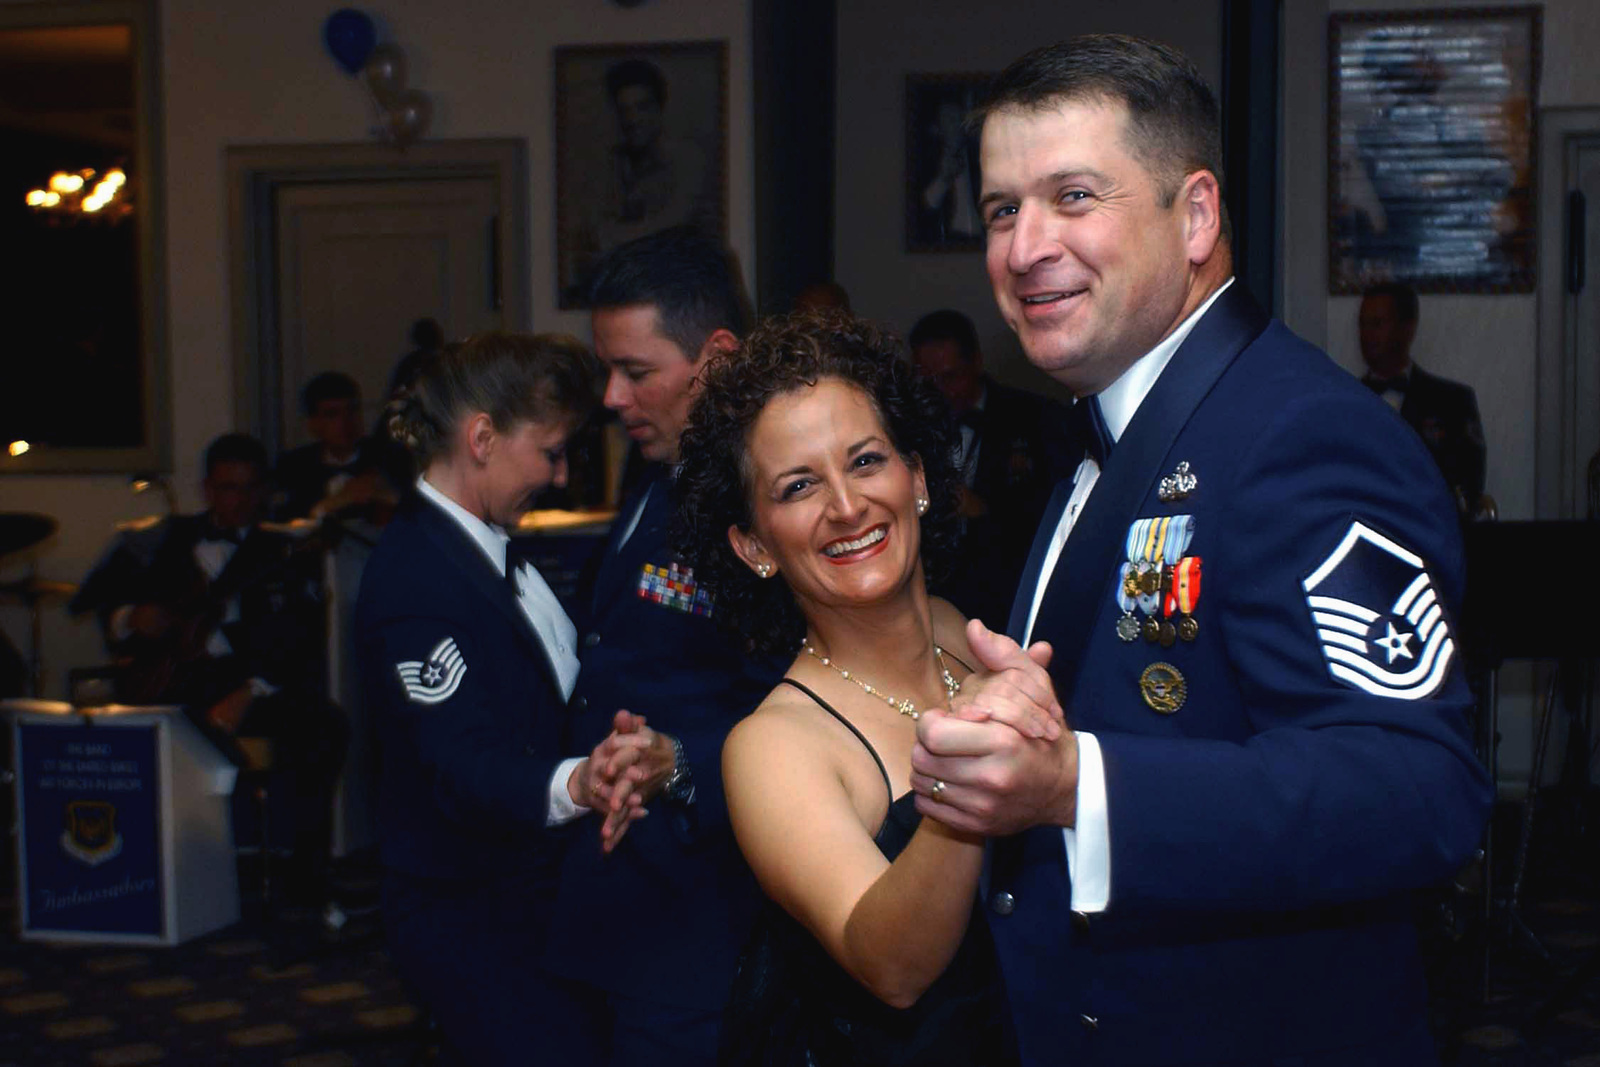 US Air Force (USAF) MASTER Sergeant (MSGT) John Snow and his wife Kay strut their stuff in the swing dance room, during the USAF Fifty-Fifth Birthday Ball Cerebration held at Ramstein Air Base (AB), Germany